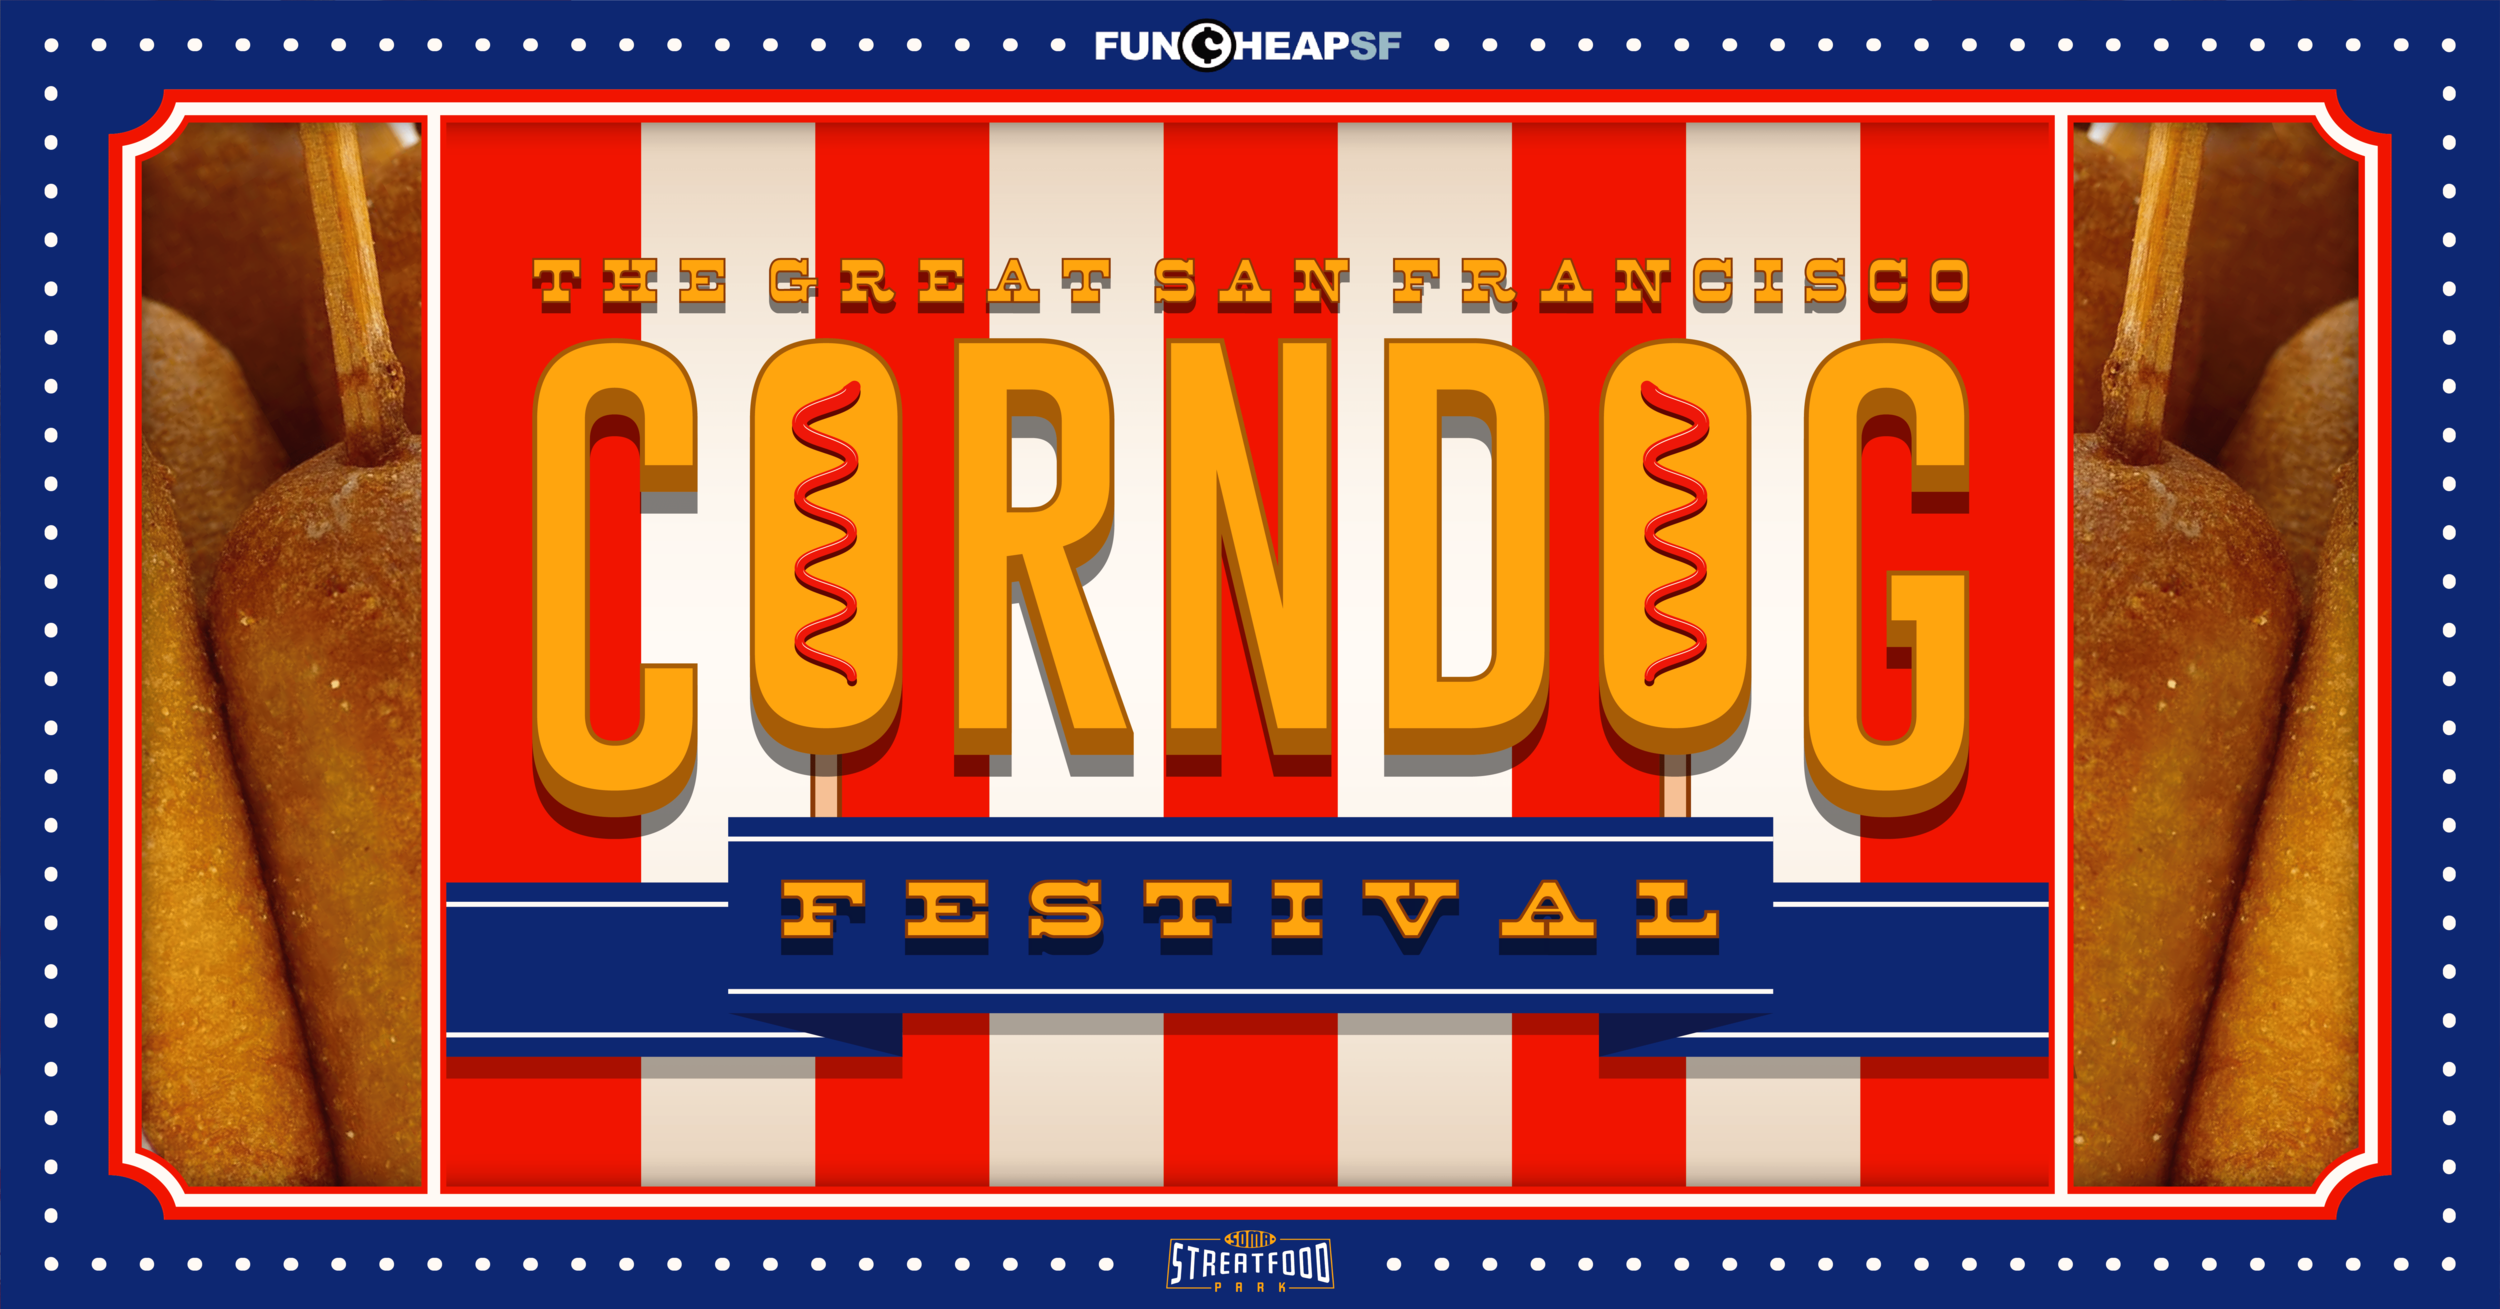 CornDogDay2019-event-31jan-08-min.png